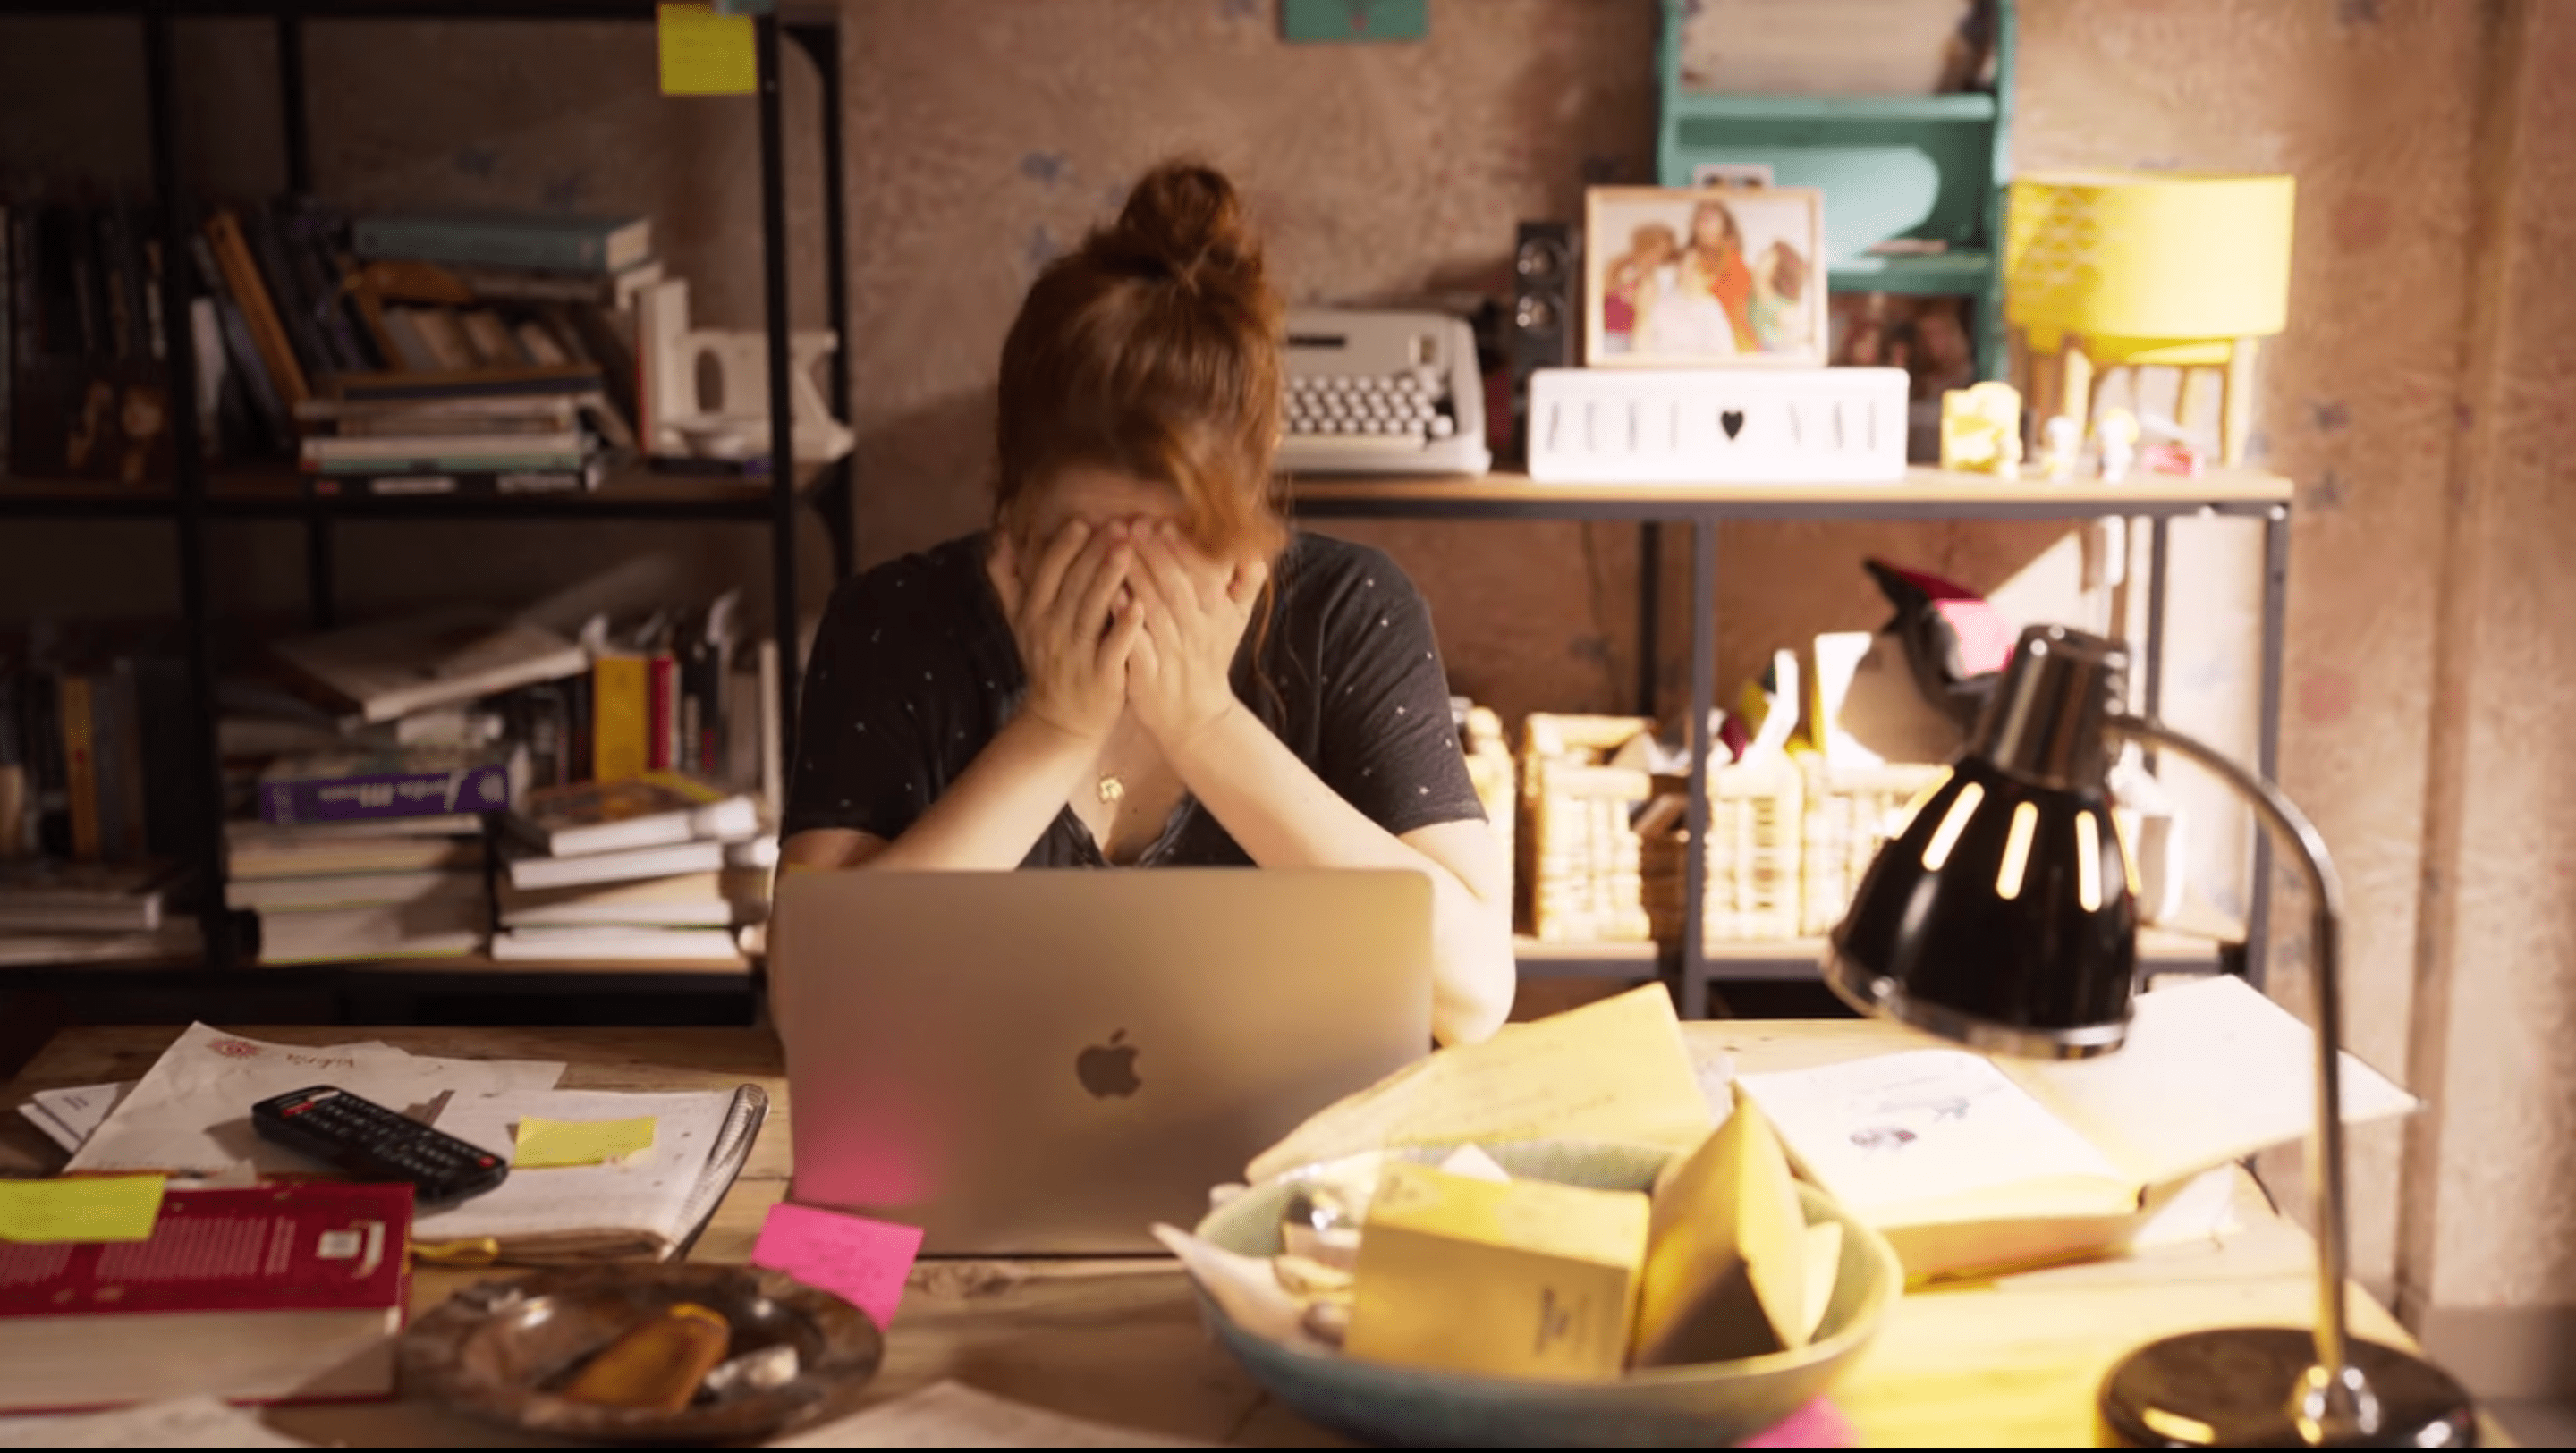 Valeria, a white woman with medium length red hair, sits in front of a lap top with her face in her hands. the desk around her is messy and so are all the book shelves behind her.